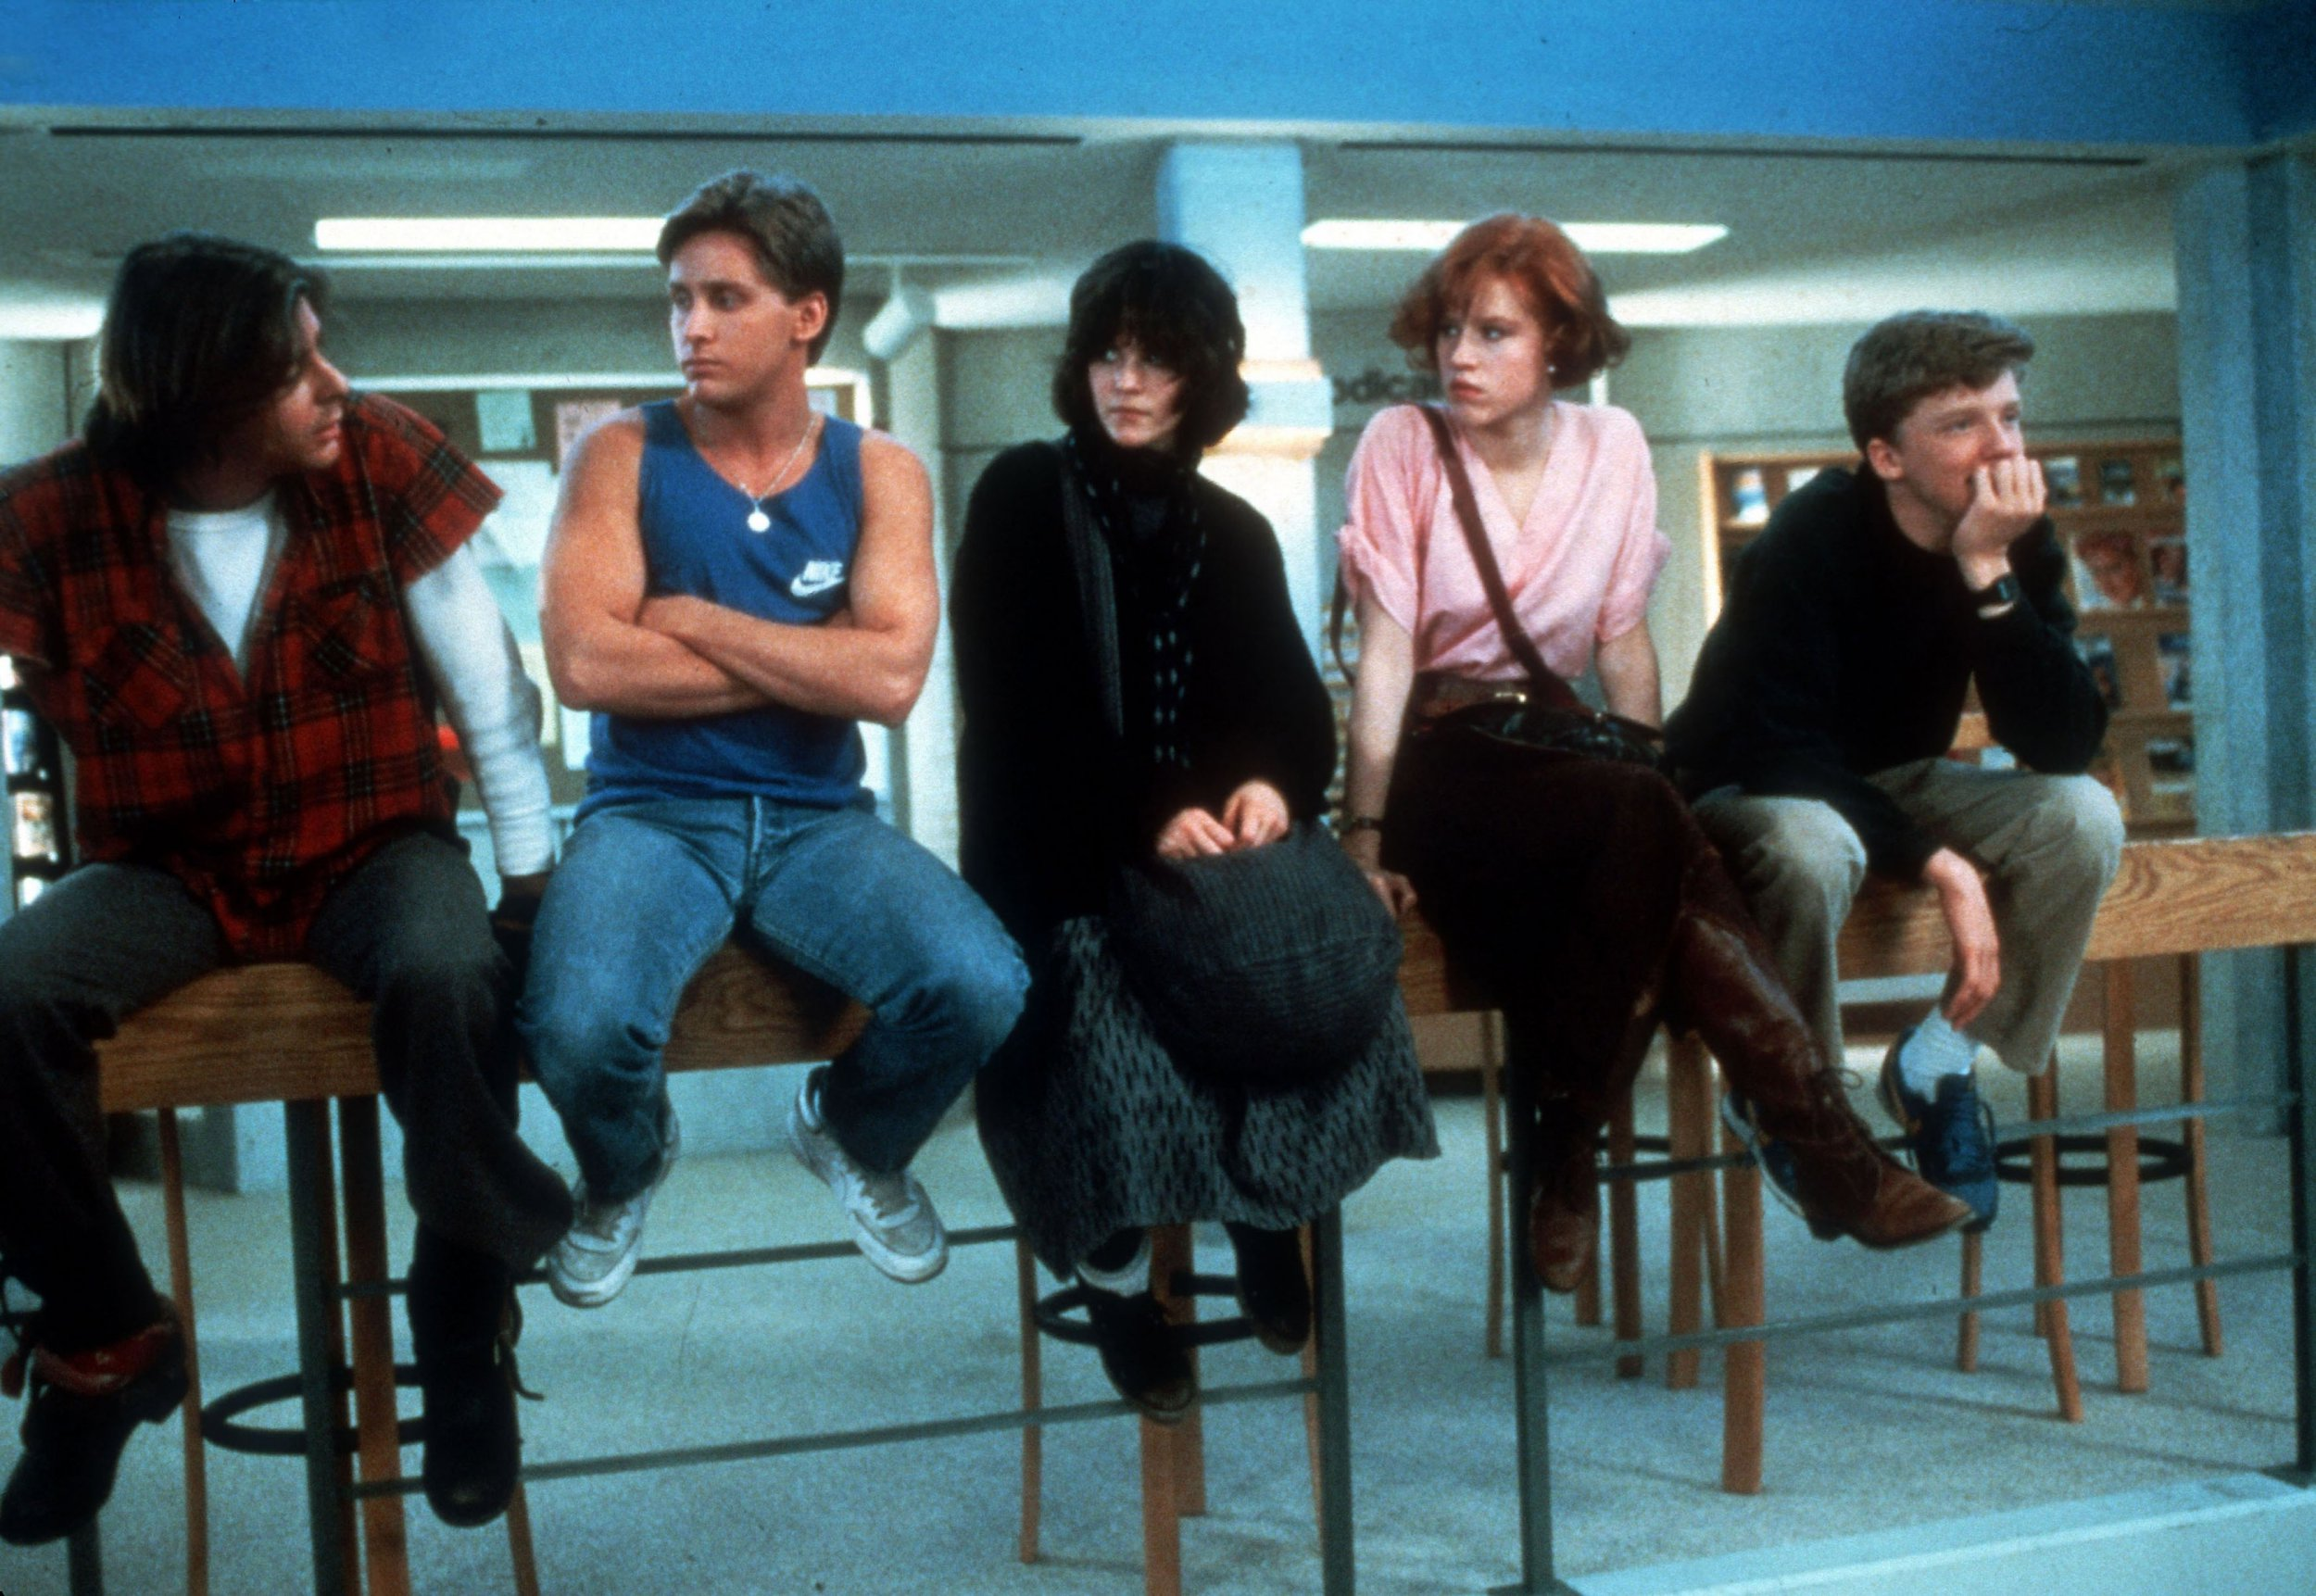 The Breakfast Club: Why it's the ultimate 80s teen movie